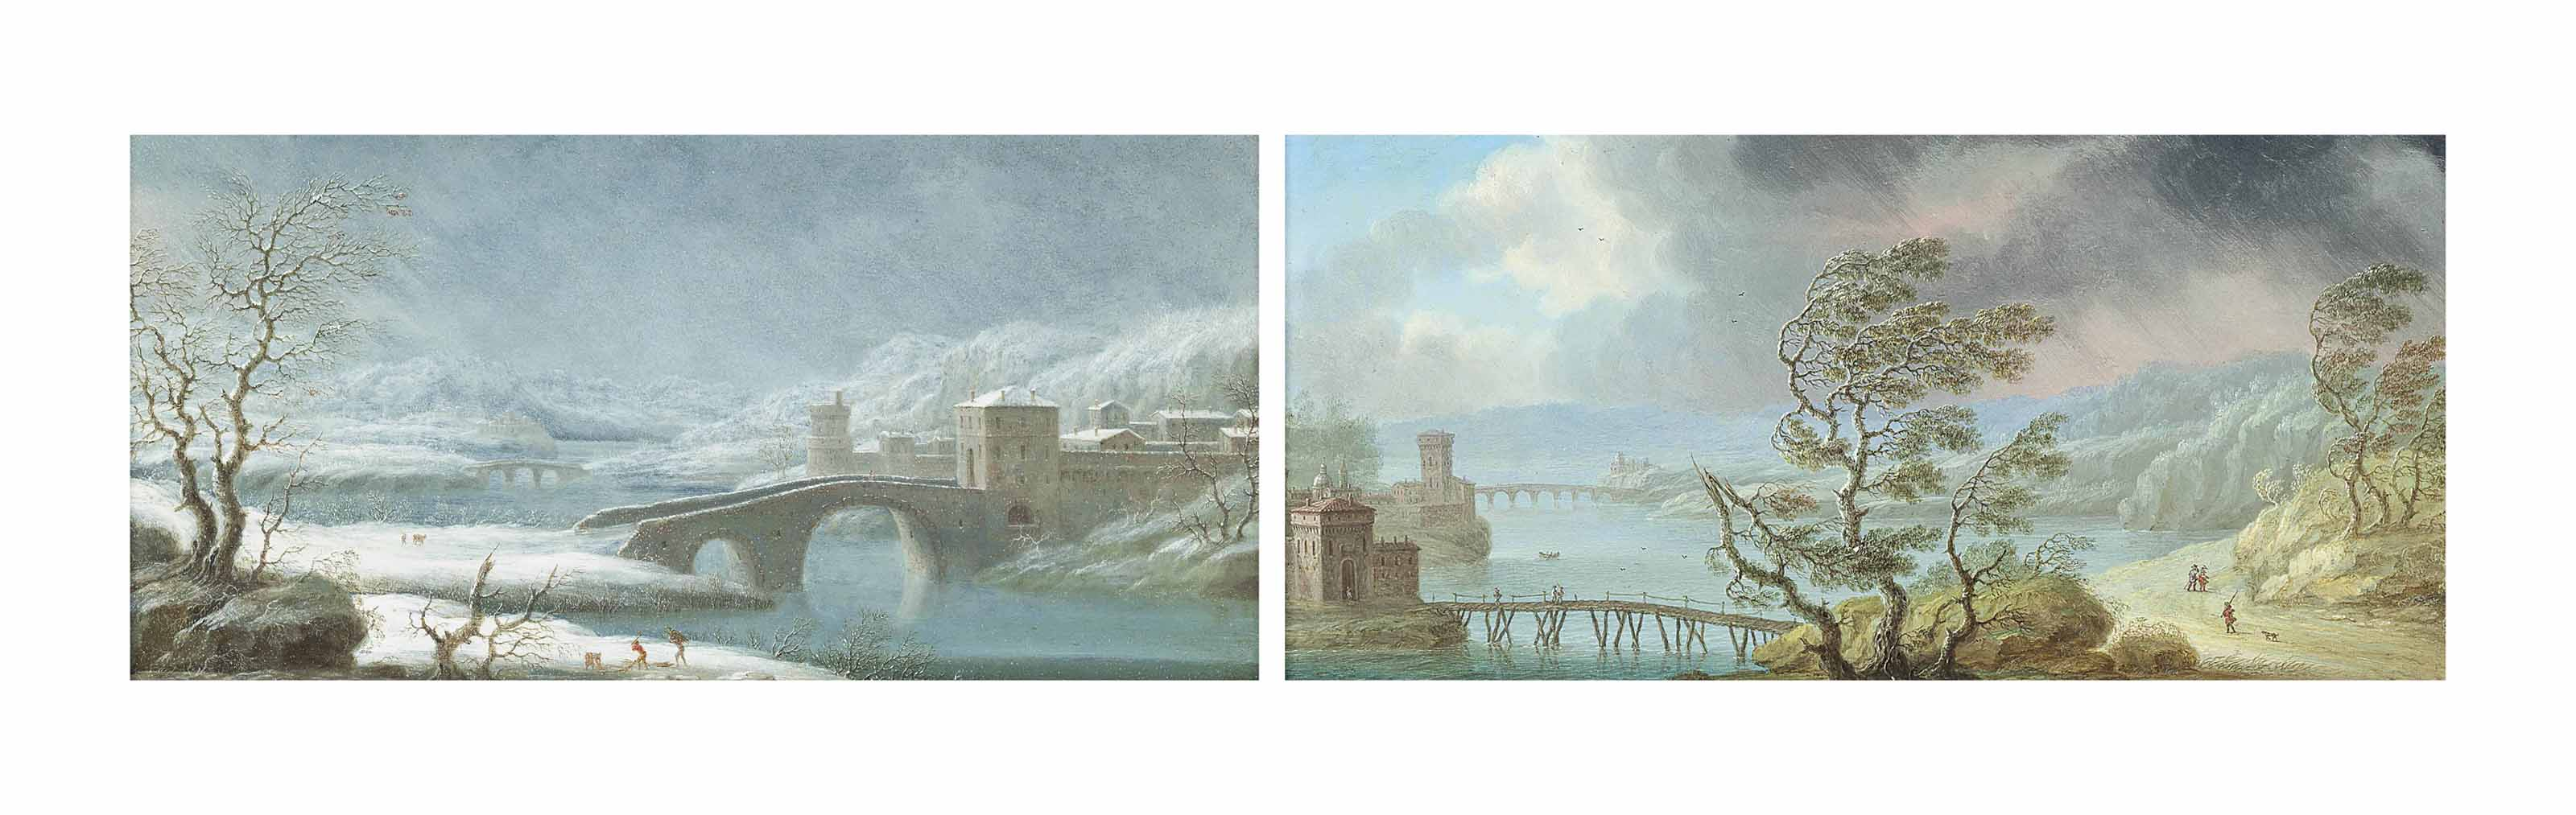 A summer river landscape with travellers on a path during a tempest; and A winter landscape with a fortified city